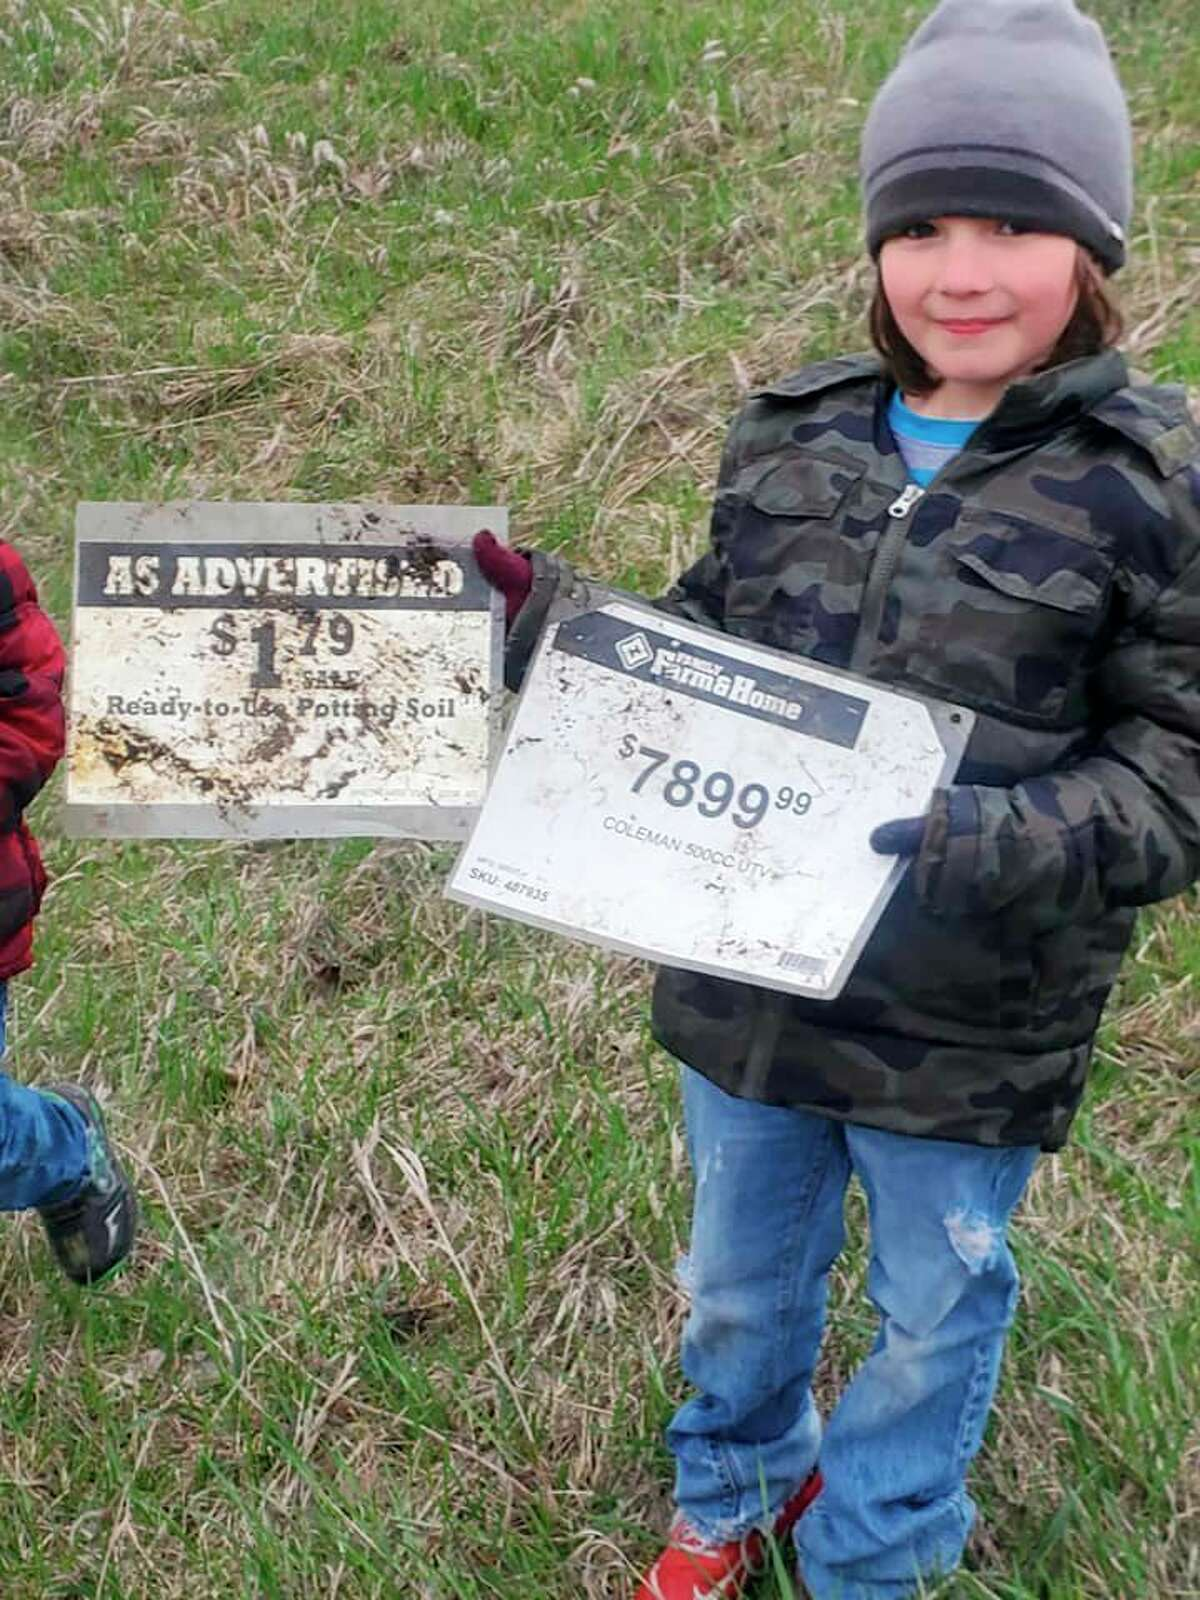 As a birthday present, seven year-old Addison Thorstenson, of Reed City, enlisted the help of her family for a recent trash pickup. (Courtesy photo)